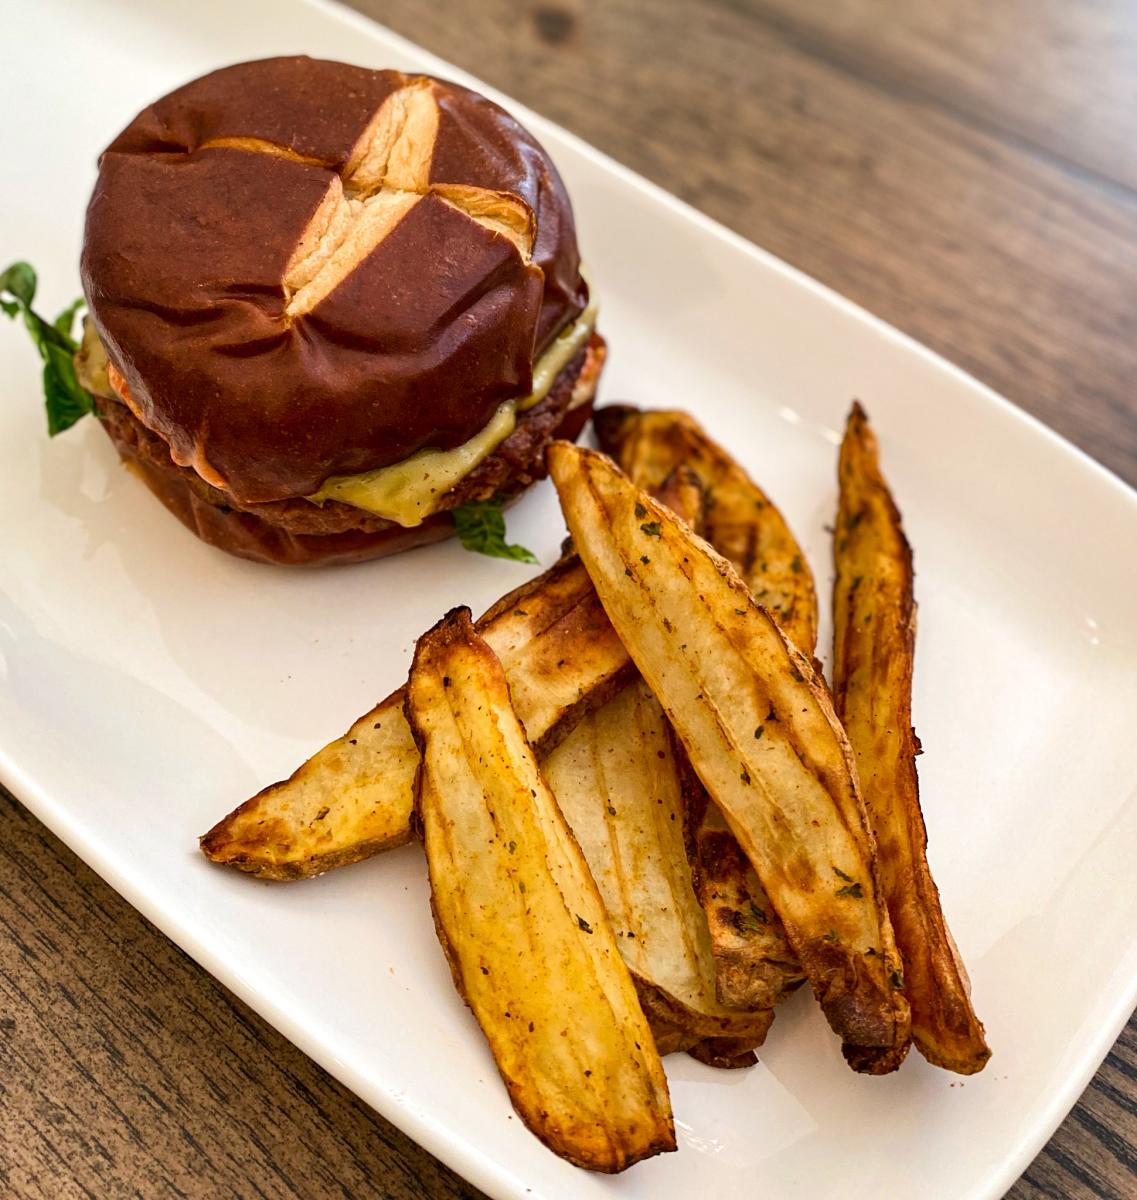 Plated vegetarian burger and potato wedges from Taste and See.